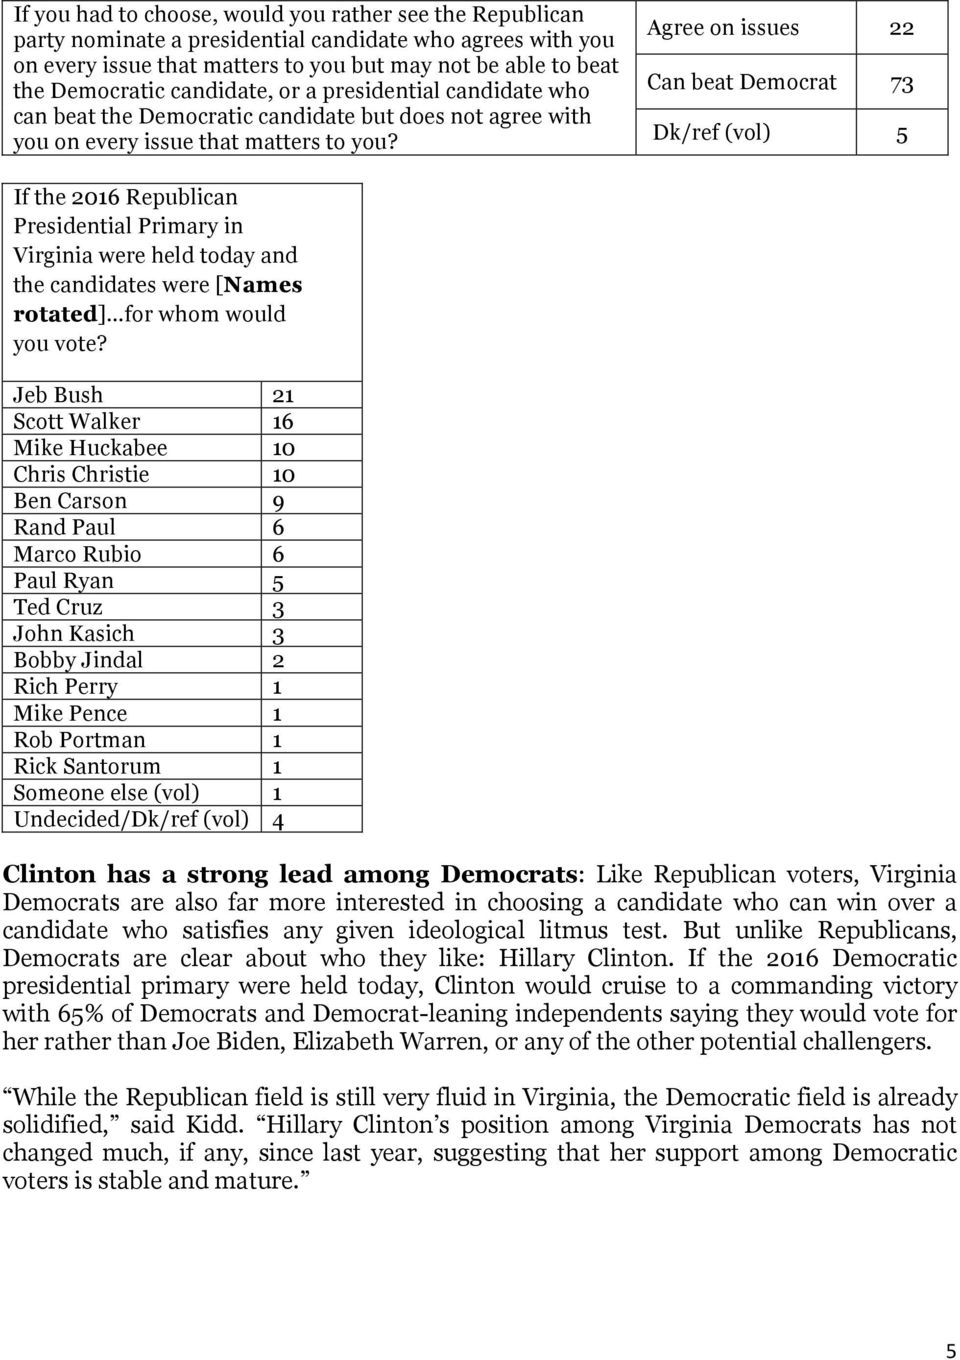 Agree on issues 22 Can beat Democrat 73 Dk/ref (vol) 5 If the 2016 Republican Presidential Primary in Virginia were held today and the candidates were [Names rotated] for whom would you vote?